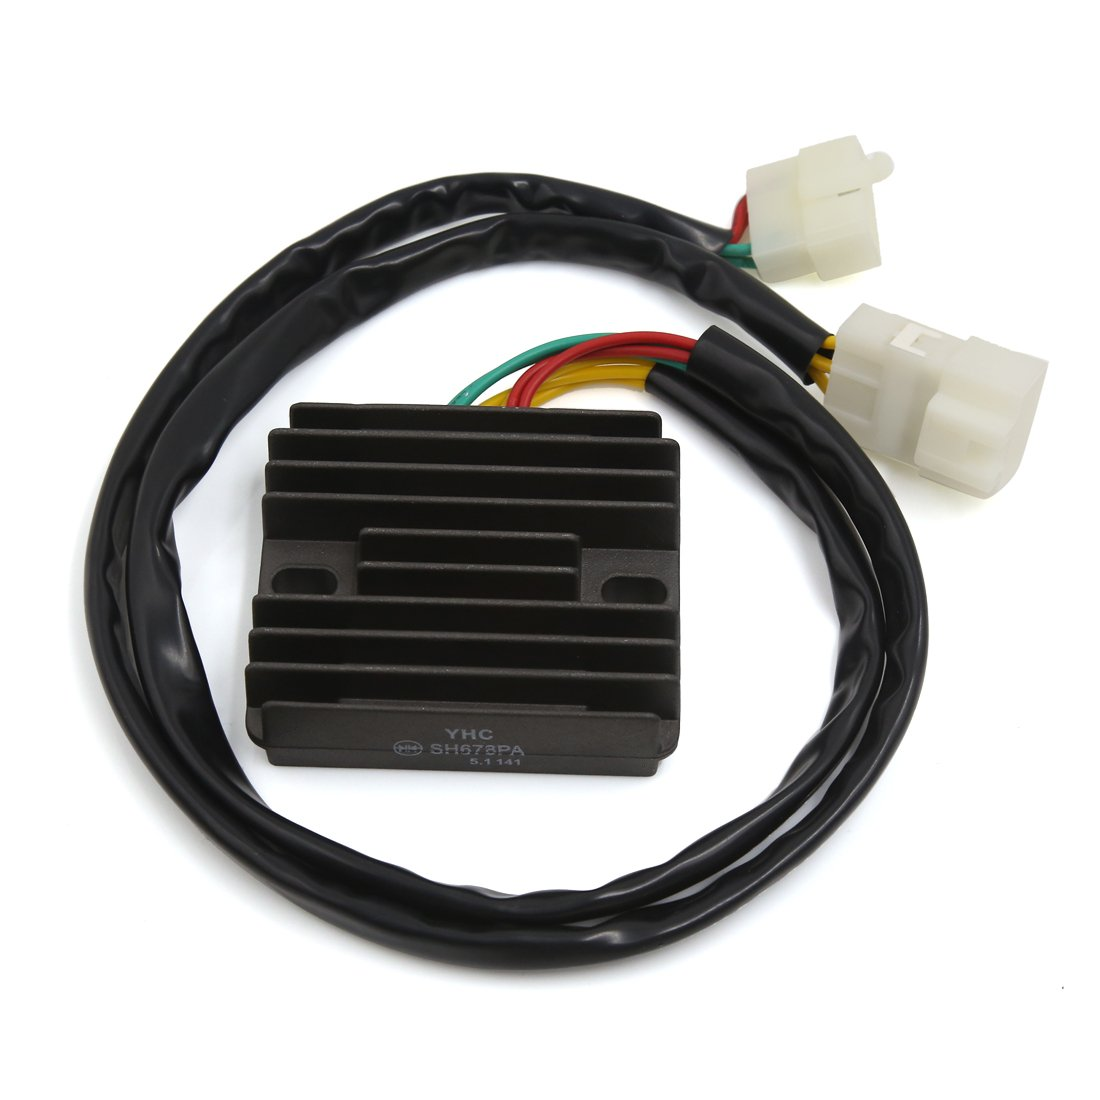 uxcell Aluminum Alloy Voltage Regulator Rectifier Black by uxcell